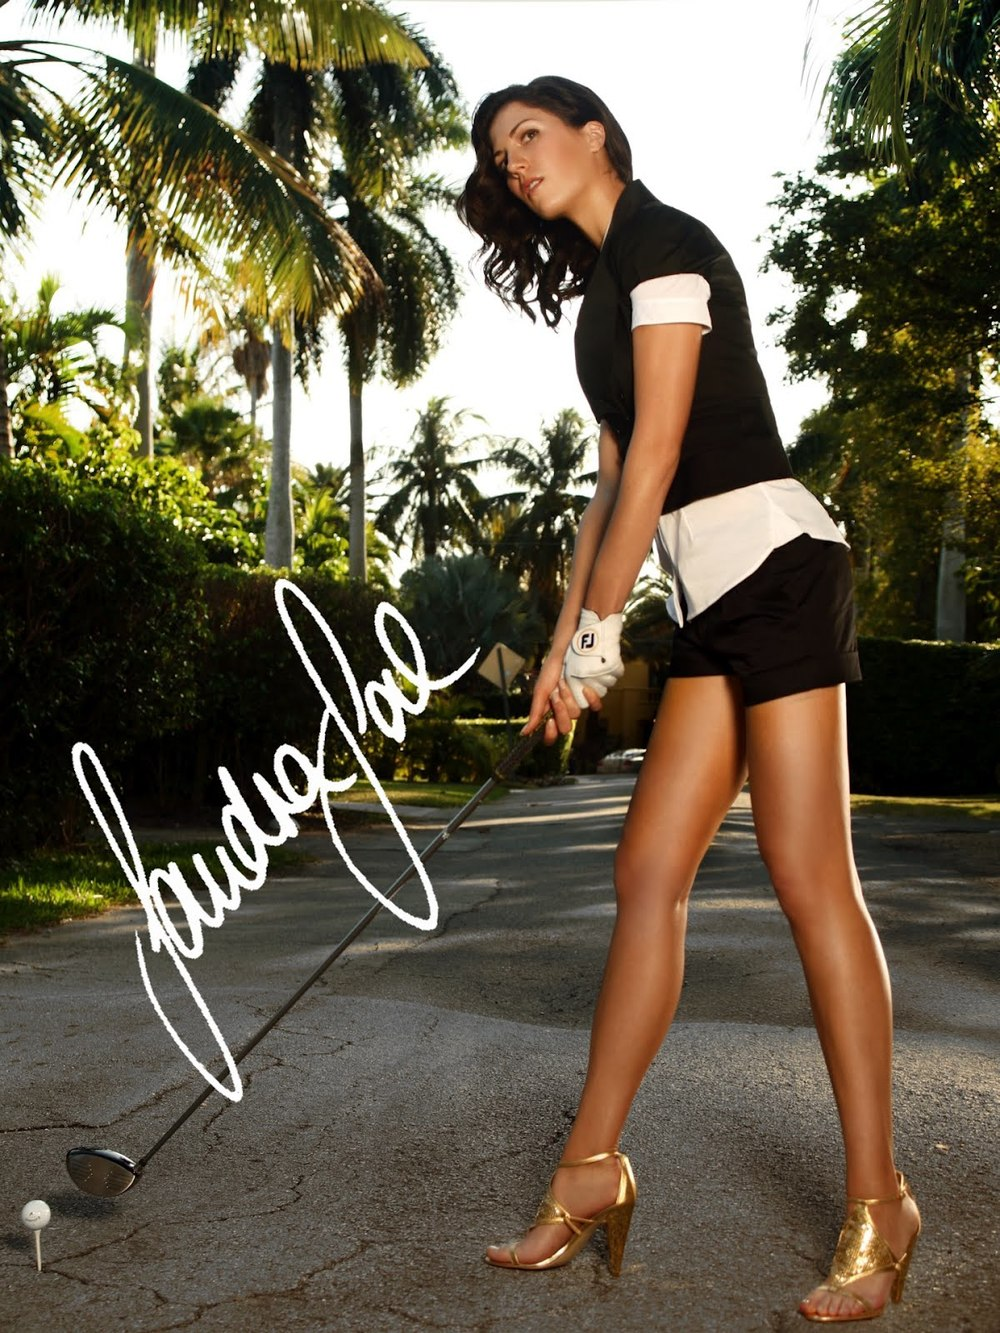 Sandra Gal LPGA - Best Legs on Tour?...